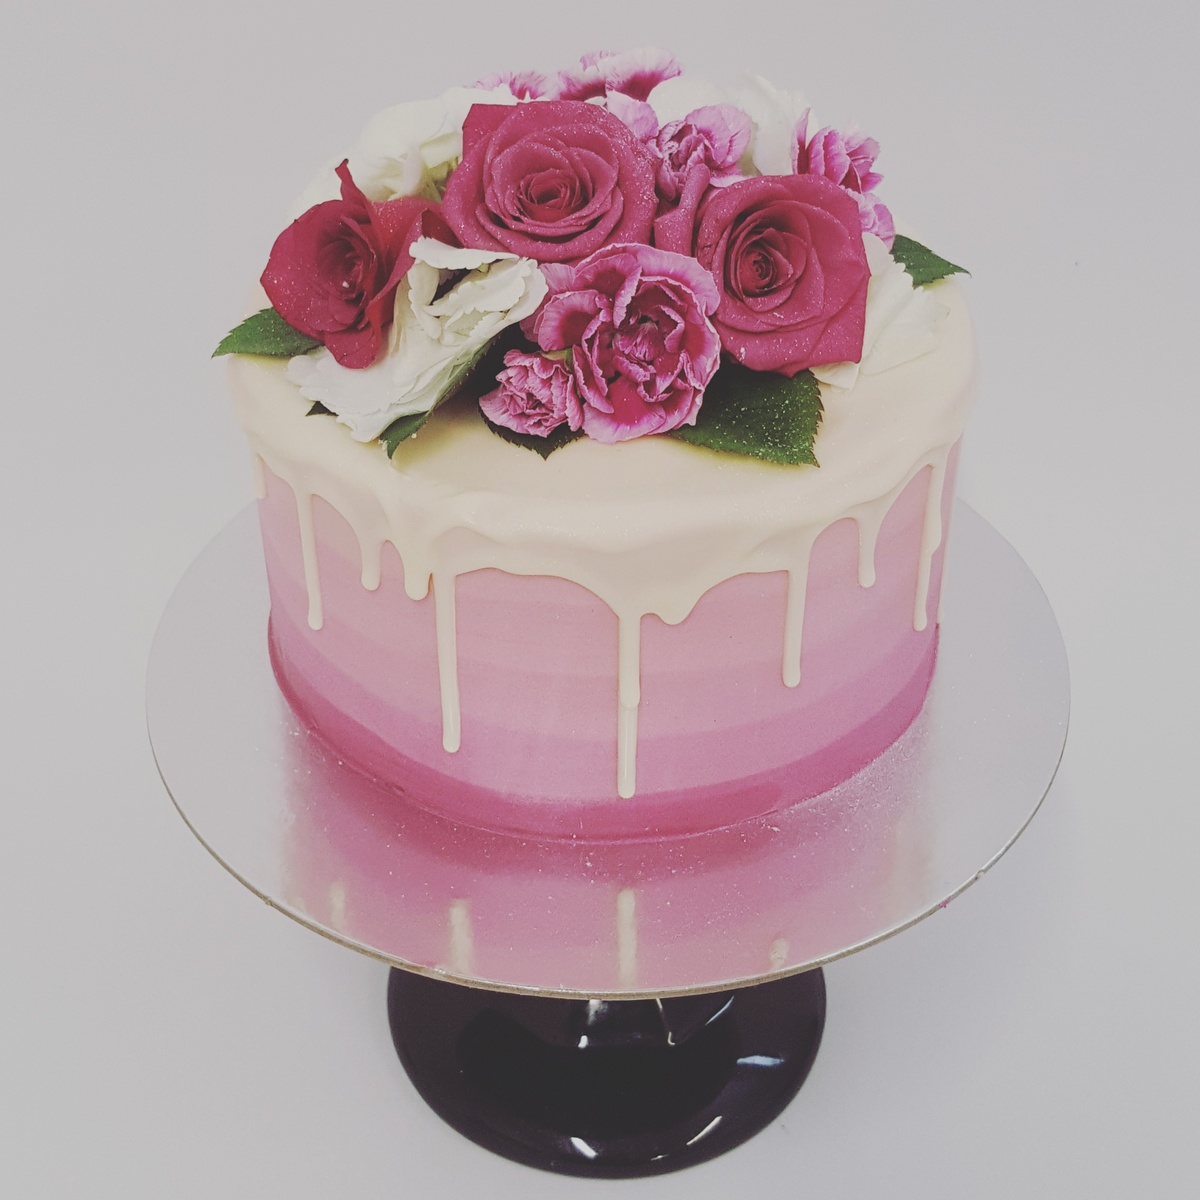 Pink Ombre With White Chocolate Drip And Fresh Flowers